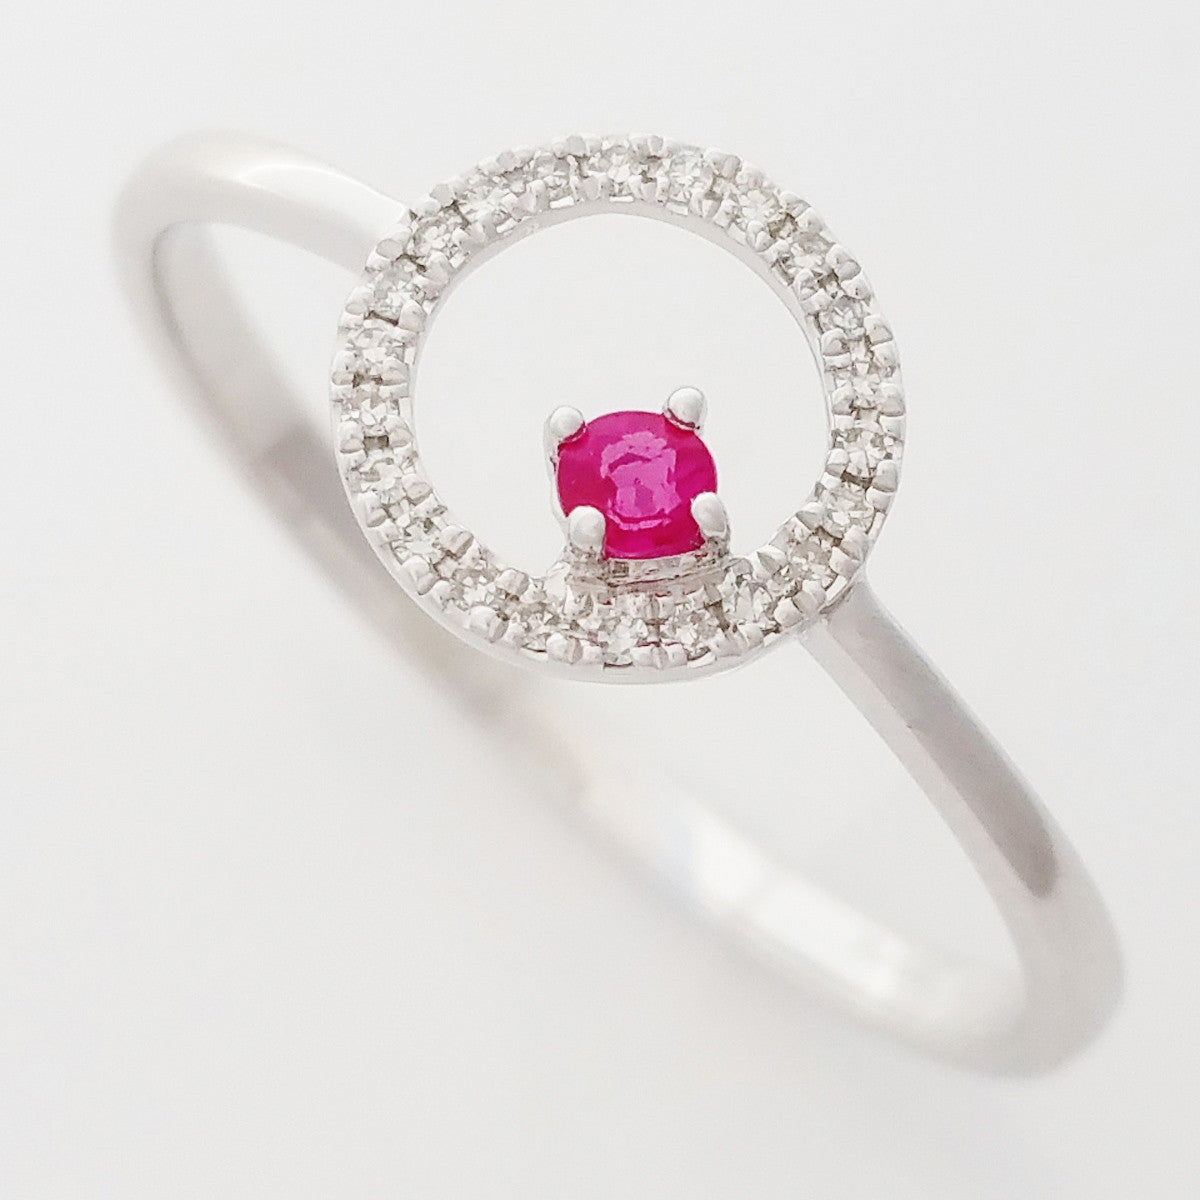 9K SOLID WHITE GOLD PETITE NATURAL RUBY HALO RING WITH 22 DIAMONDS.